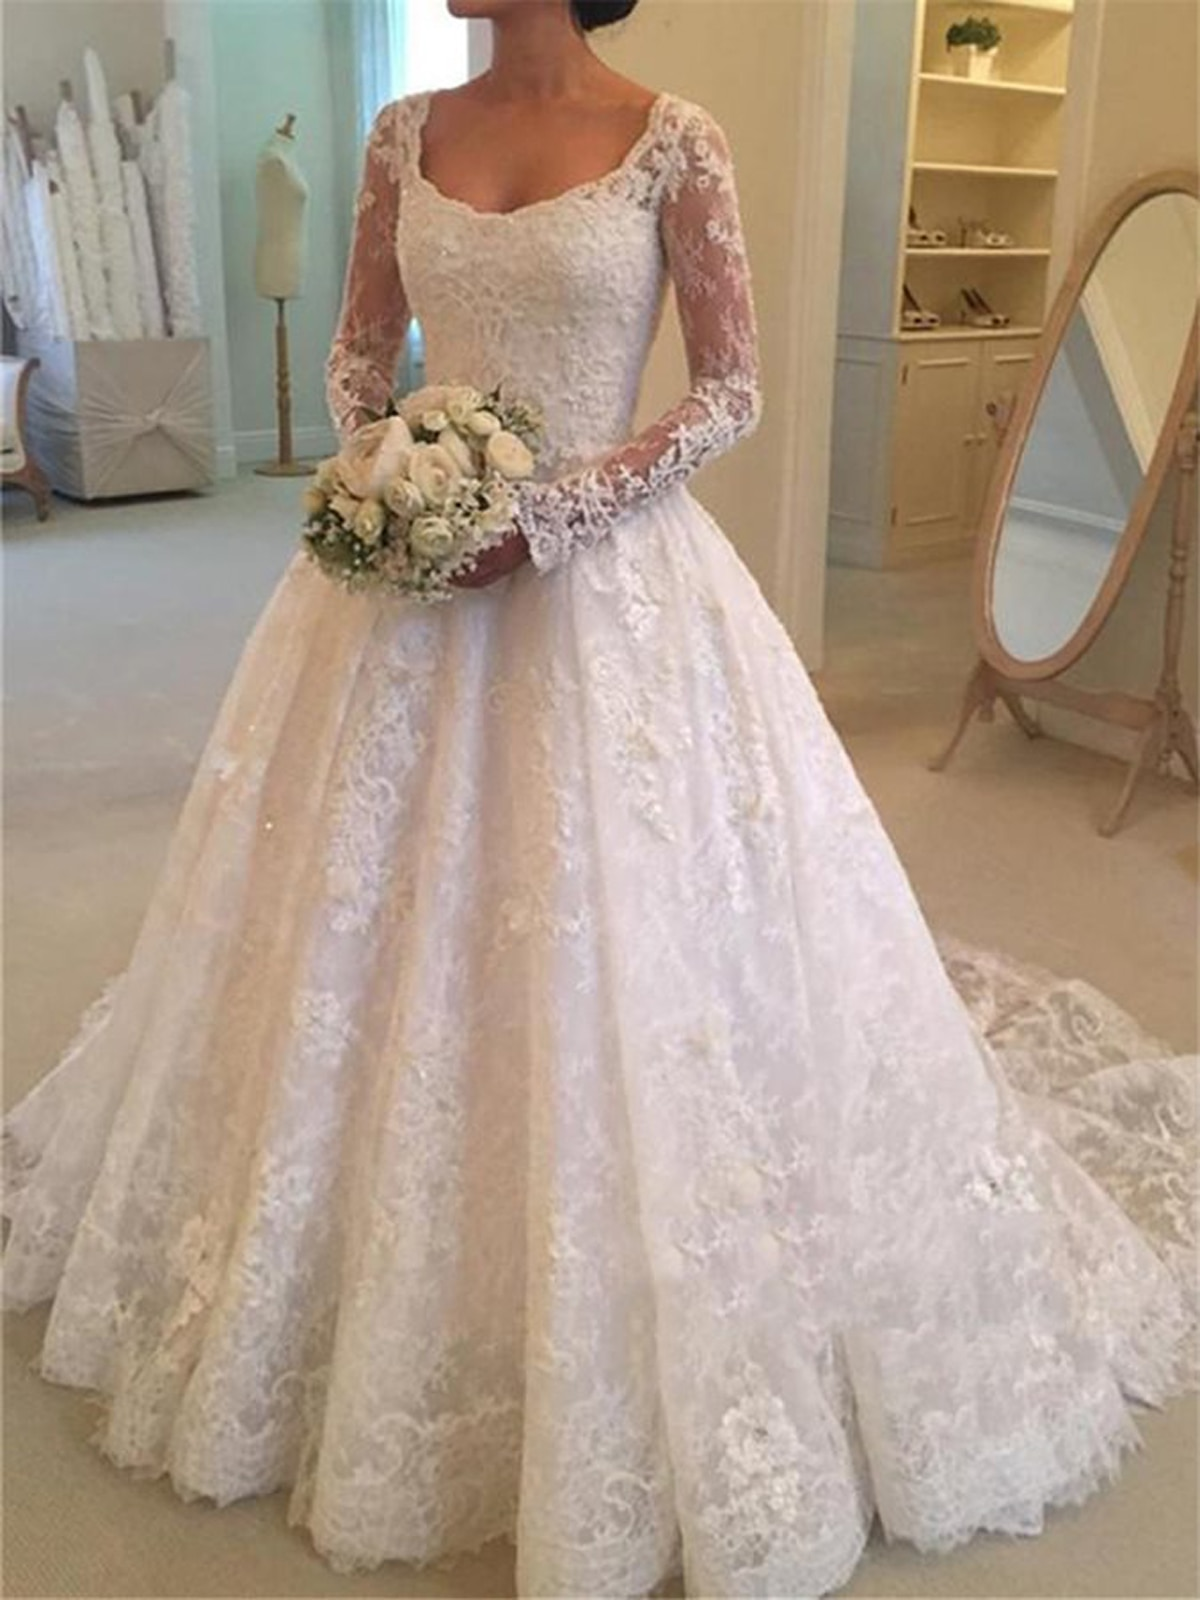 Custom Long Sleeves Lace Appliques Wedding Dresses with Beads Sash Sweep Train Tulle Wedding Bridal Gowns платье недорого